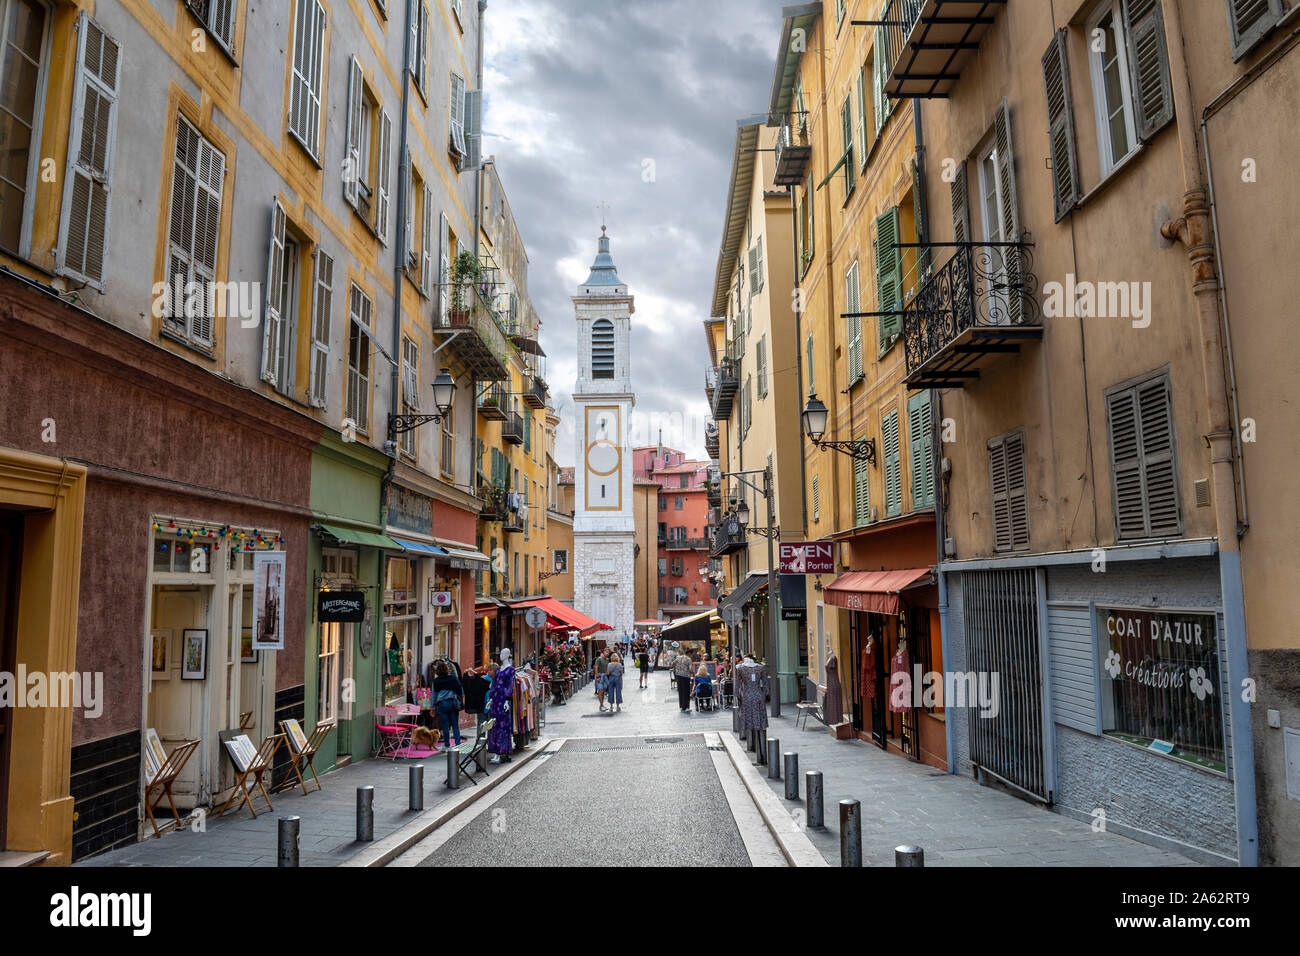 View of the campanile bell tower of the Nice Cathedral at Place Rossetti as tourists enjoy the late afternoon in Nice, France. Stock Photo